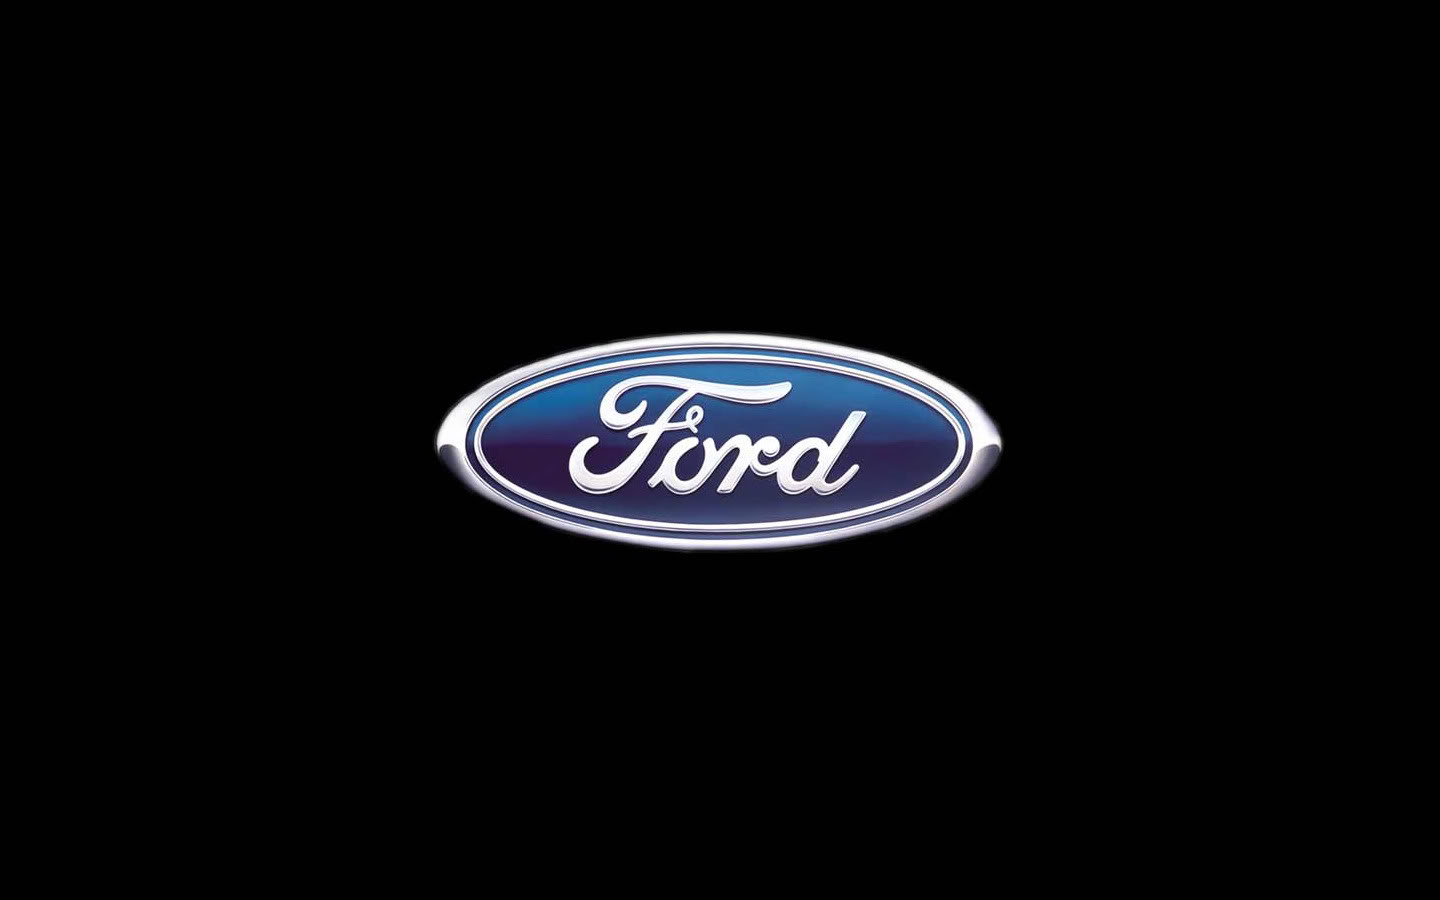 Ford Logo Wallpaper HD 1440x900